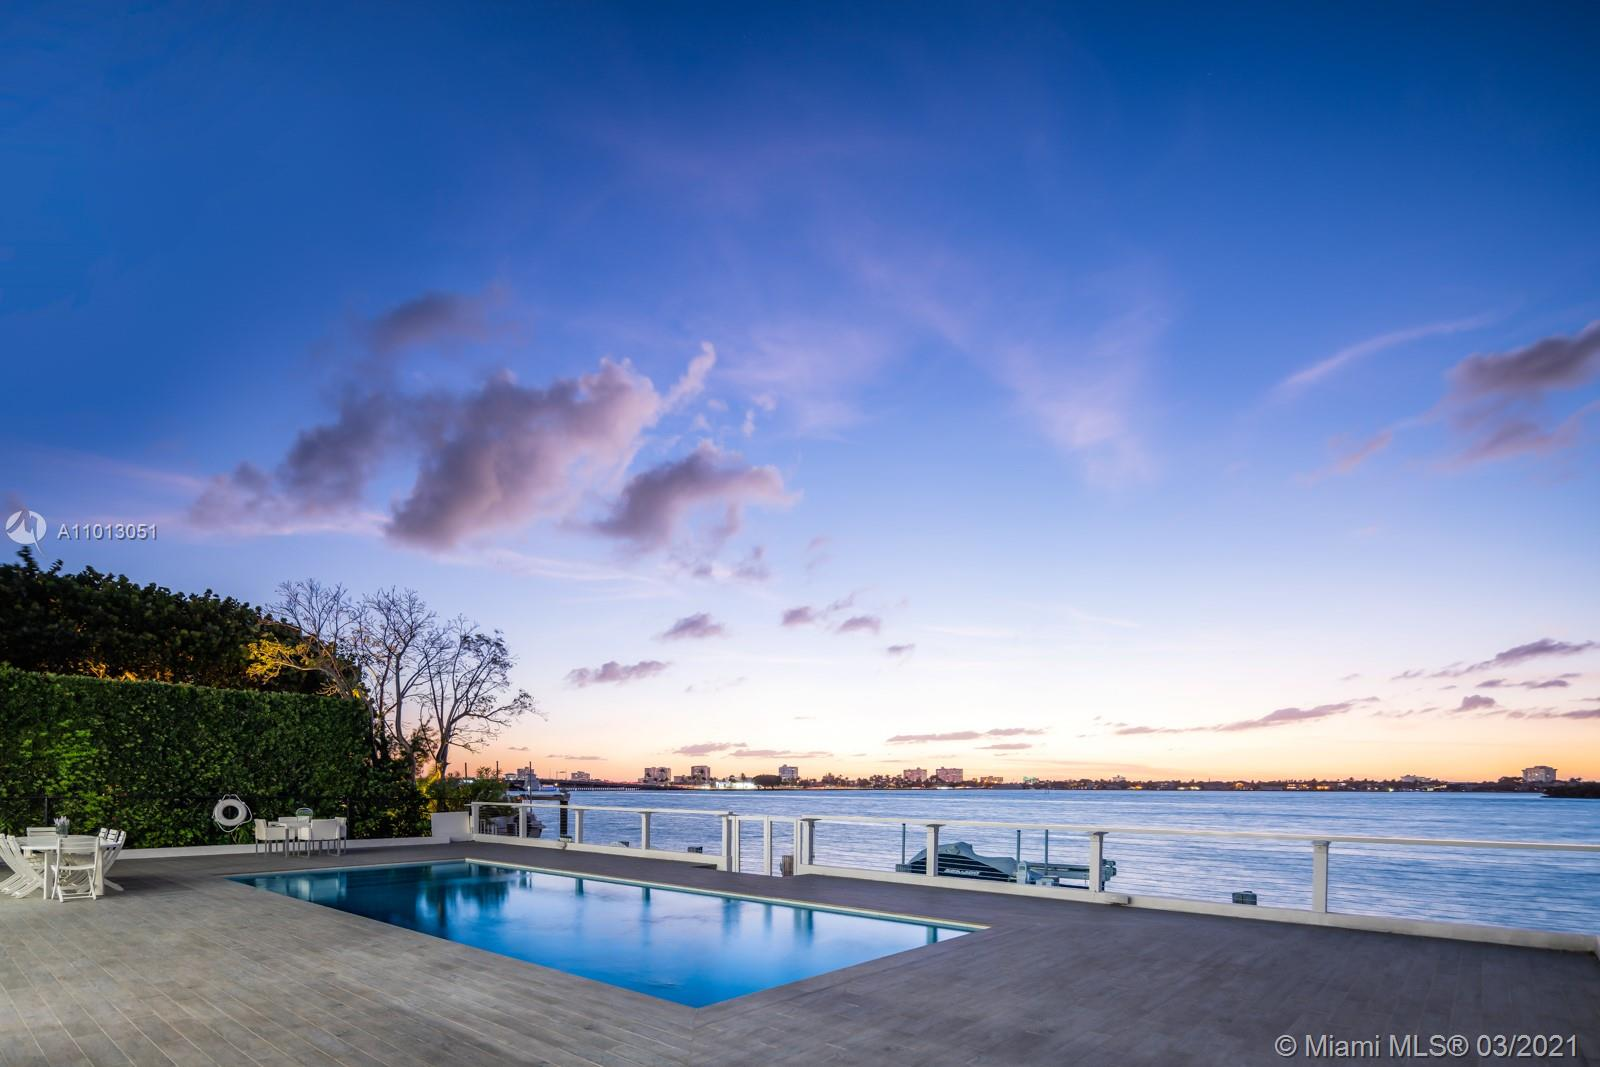 Welcome to Bay Harbour Island's most sought-after views. Fully rebuilt in 2015,  this 7,800SF home is the perfect combination of Plantation Modern architecture & sits on a 13,125SF lot w/ elevator & 6 BD, 7 BA & 2 half baths, gym & media room. At entry you are greeted with a grand living room with 20' ceilings, chefs kitchen with Subzero, Bosch & Miele appliances, 2 pantry's and a thoughtfully designed indoor/outdoor integrated living space w/ wide open bay views with 75' on the water and a private dock w/ boat lift. First floor Primary Suite w/ French doors out to the patio, 2 walk-in closets and large bathroom with jetted tub & shower. The Mezzanine level features 4 bedrooms w/ terraces, media room & gym. This Lutron smart home is fitted with integrated lighting, speaker & camera system.